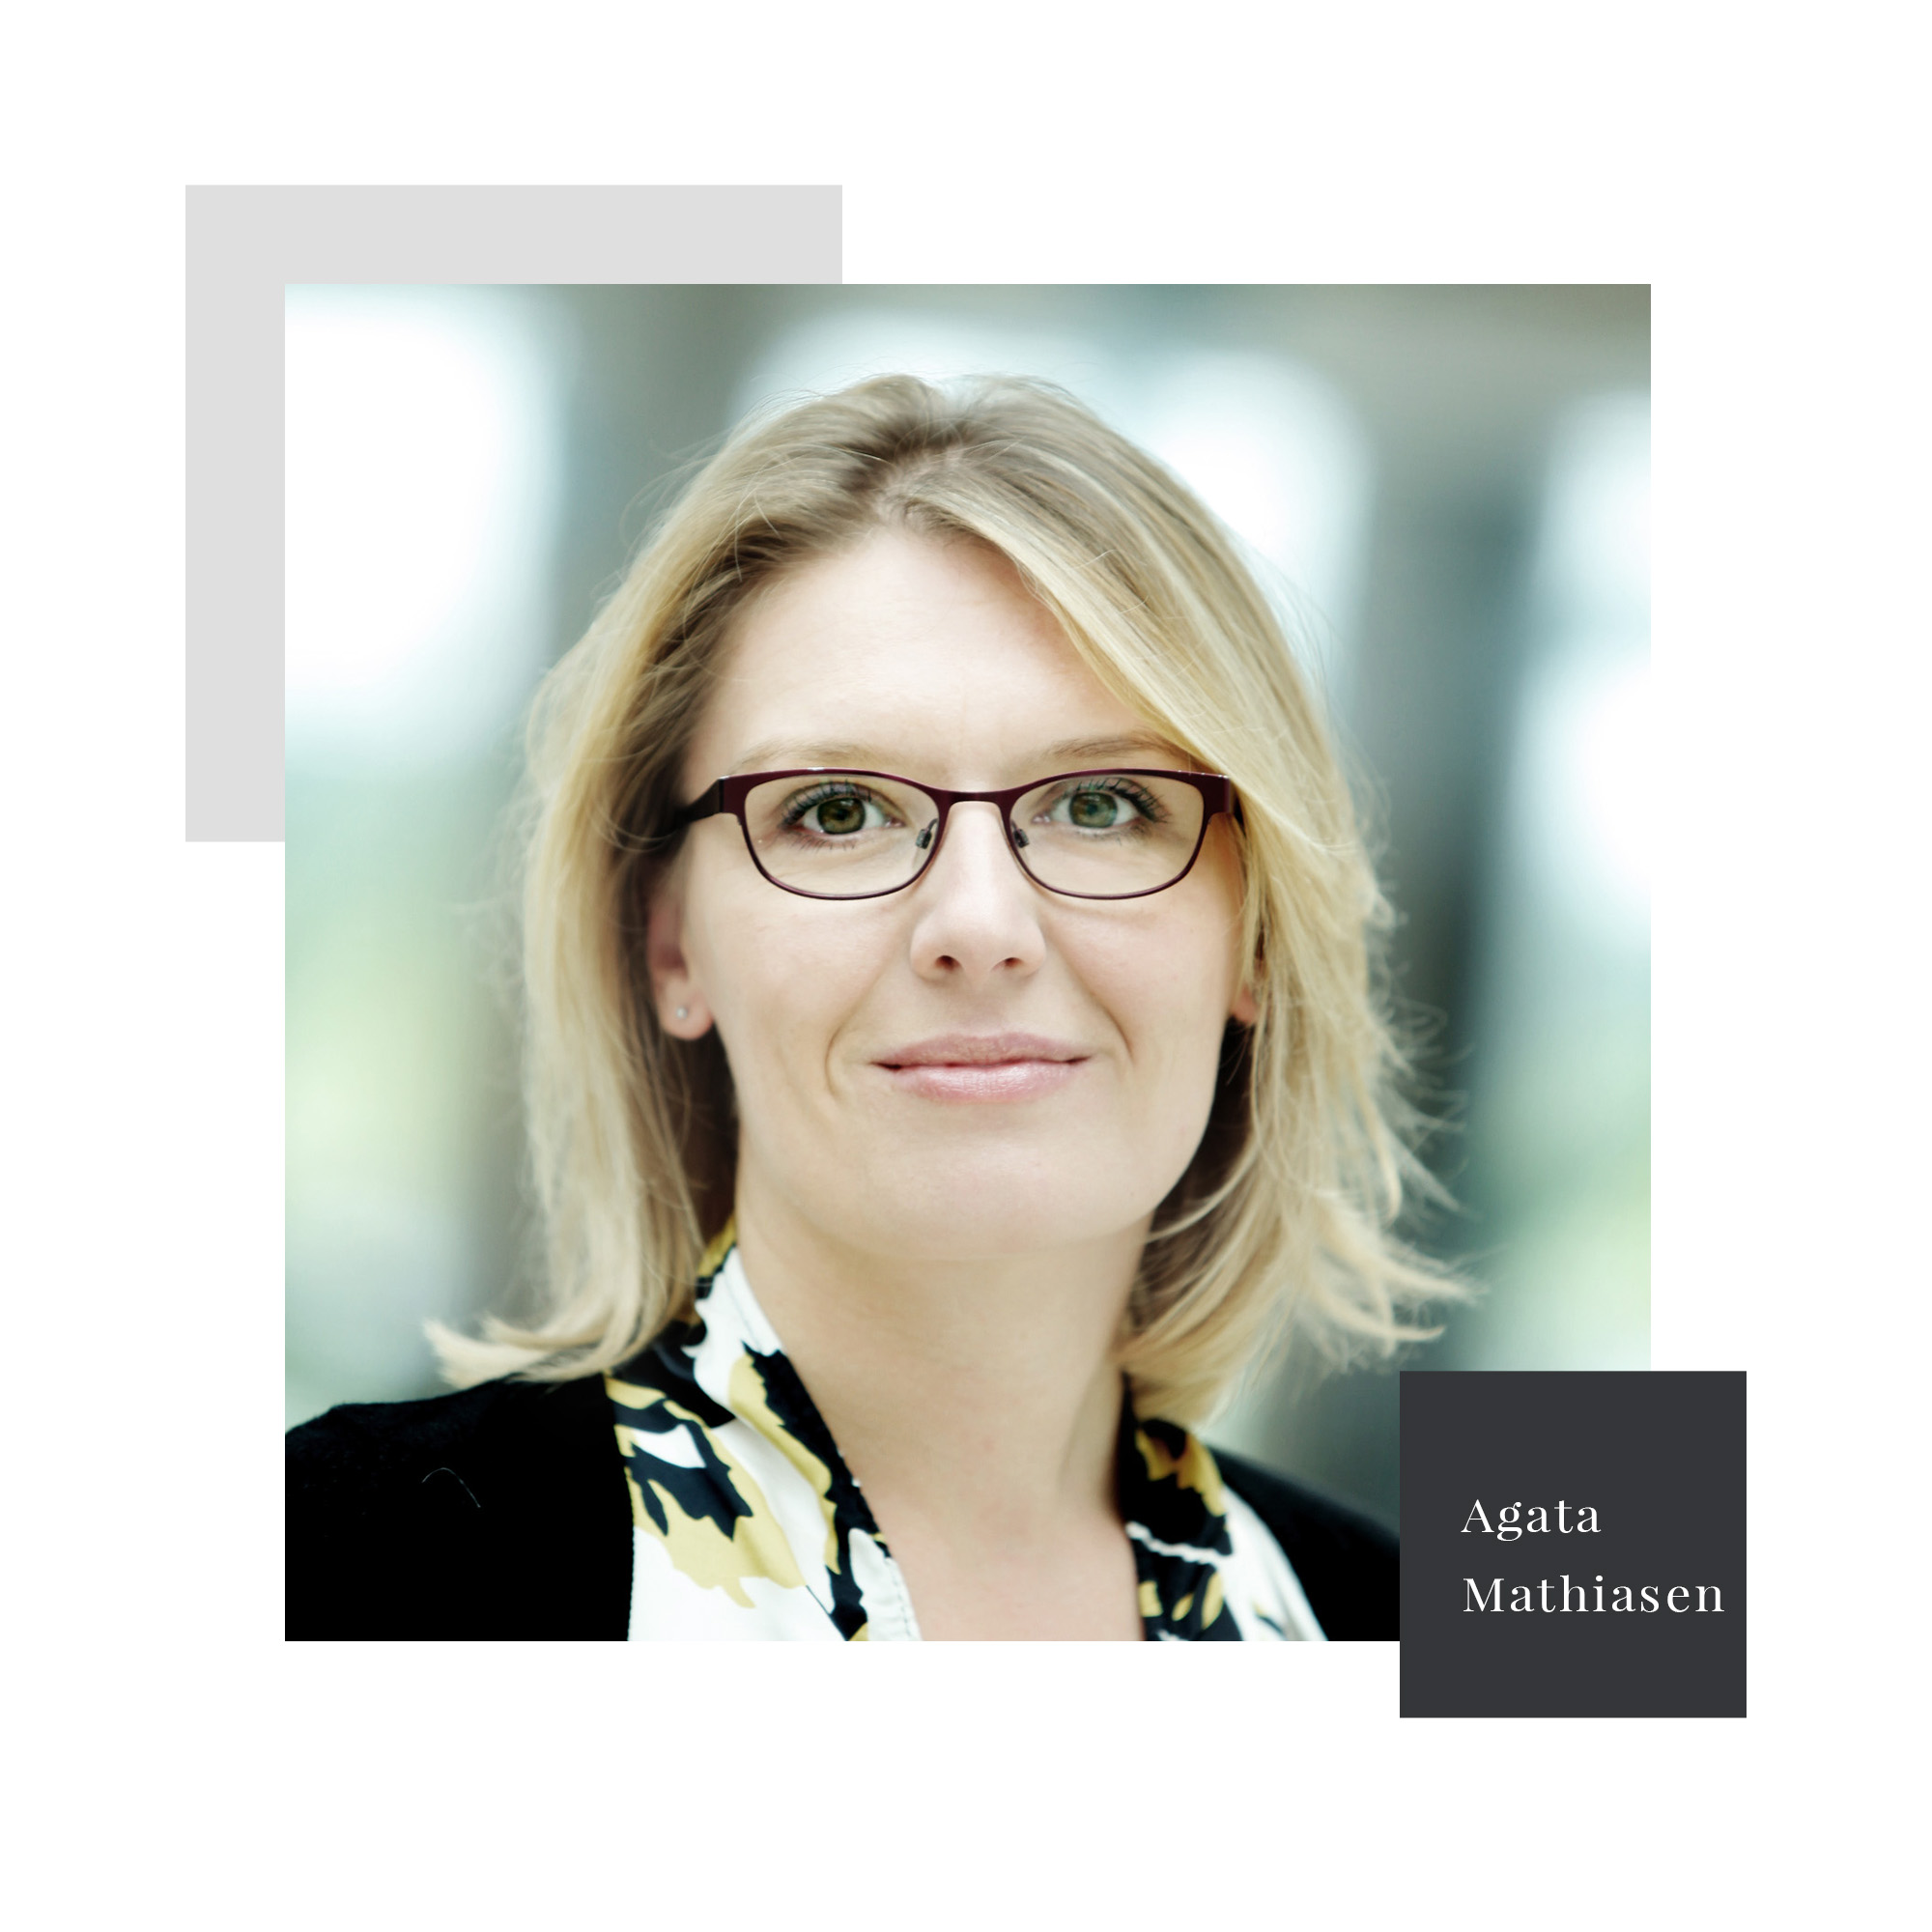 Designing A Culture of Innovation With Agata Mathiasen